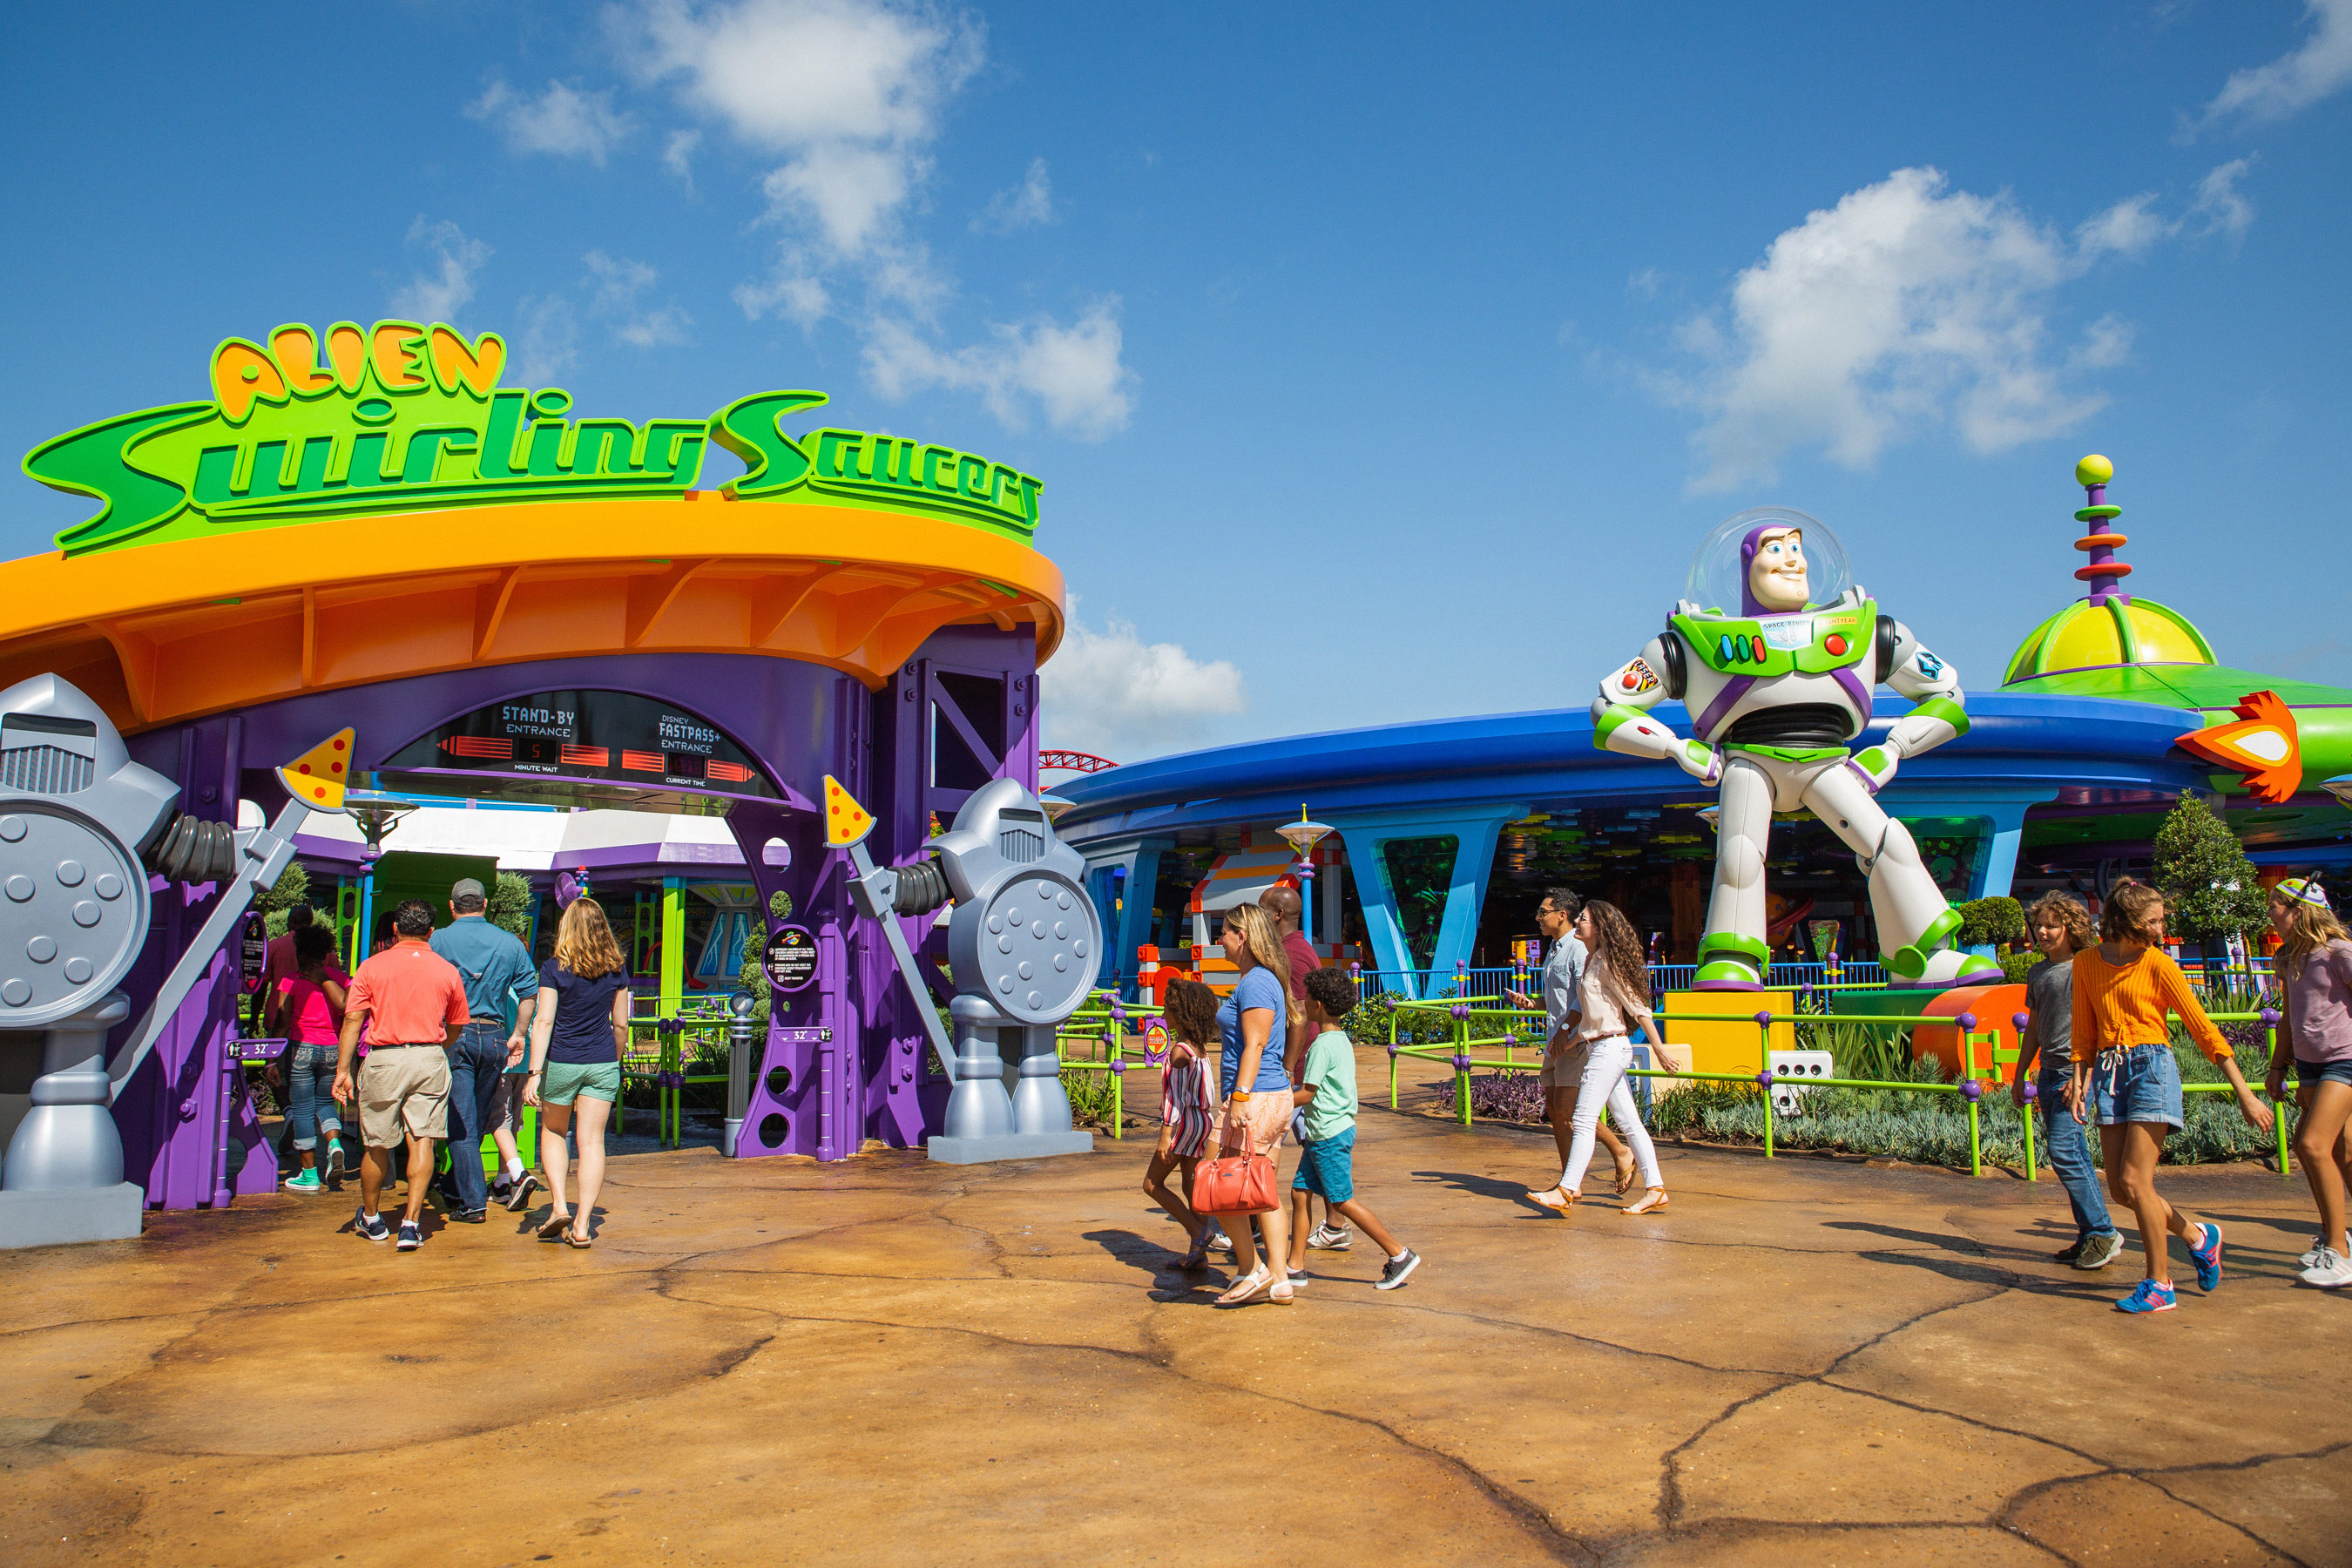 Alien Swirling Saucers attraction entrance